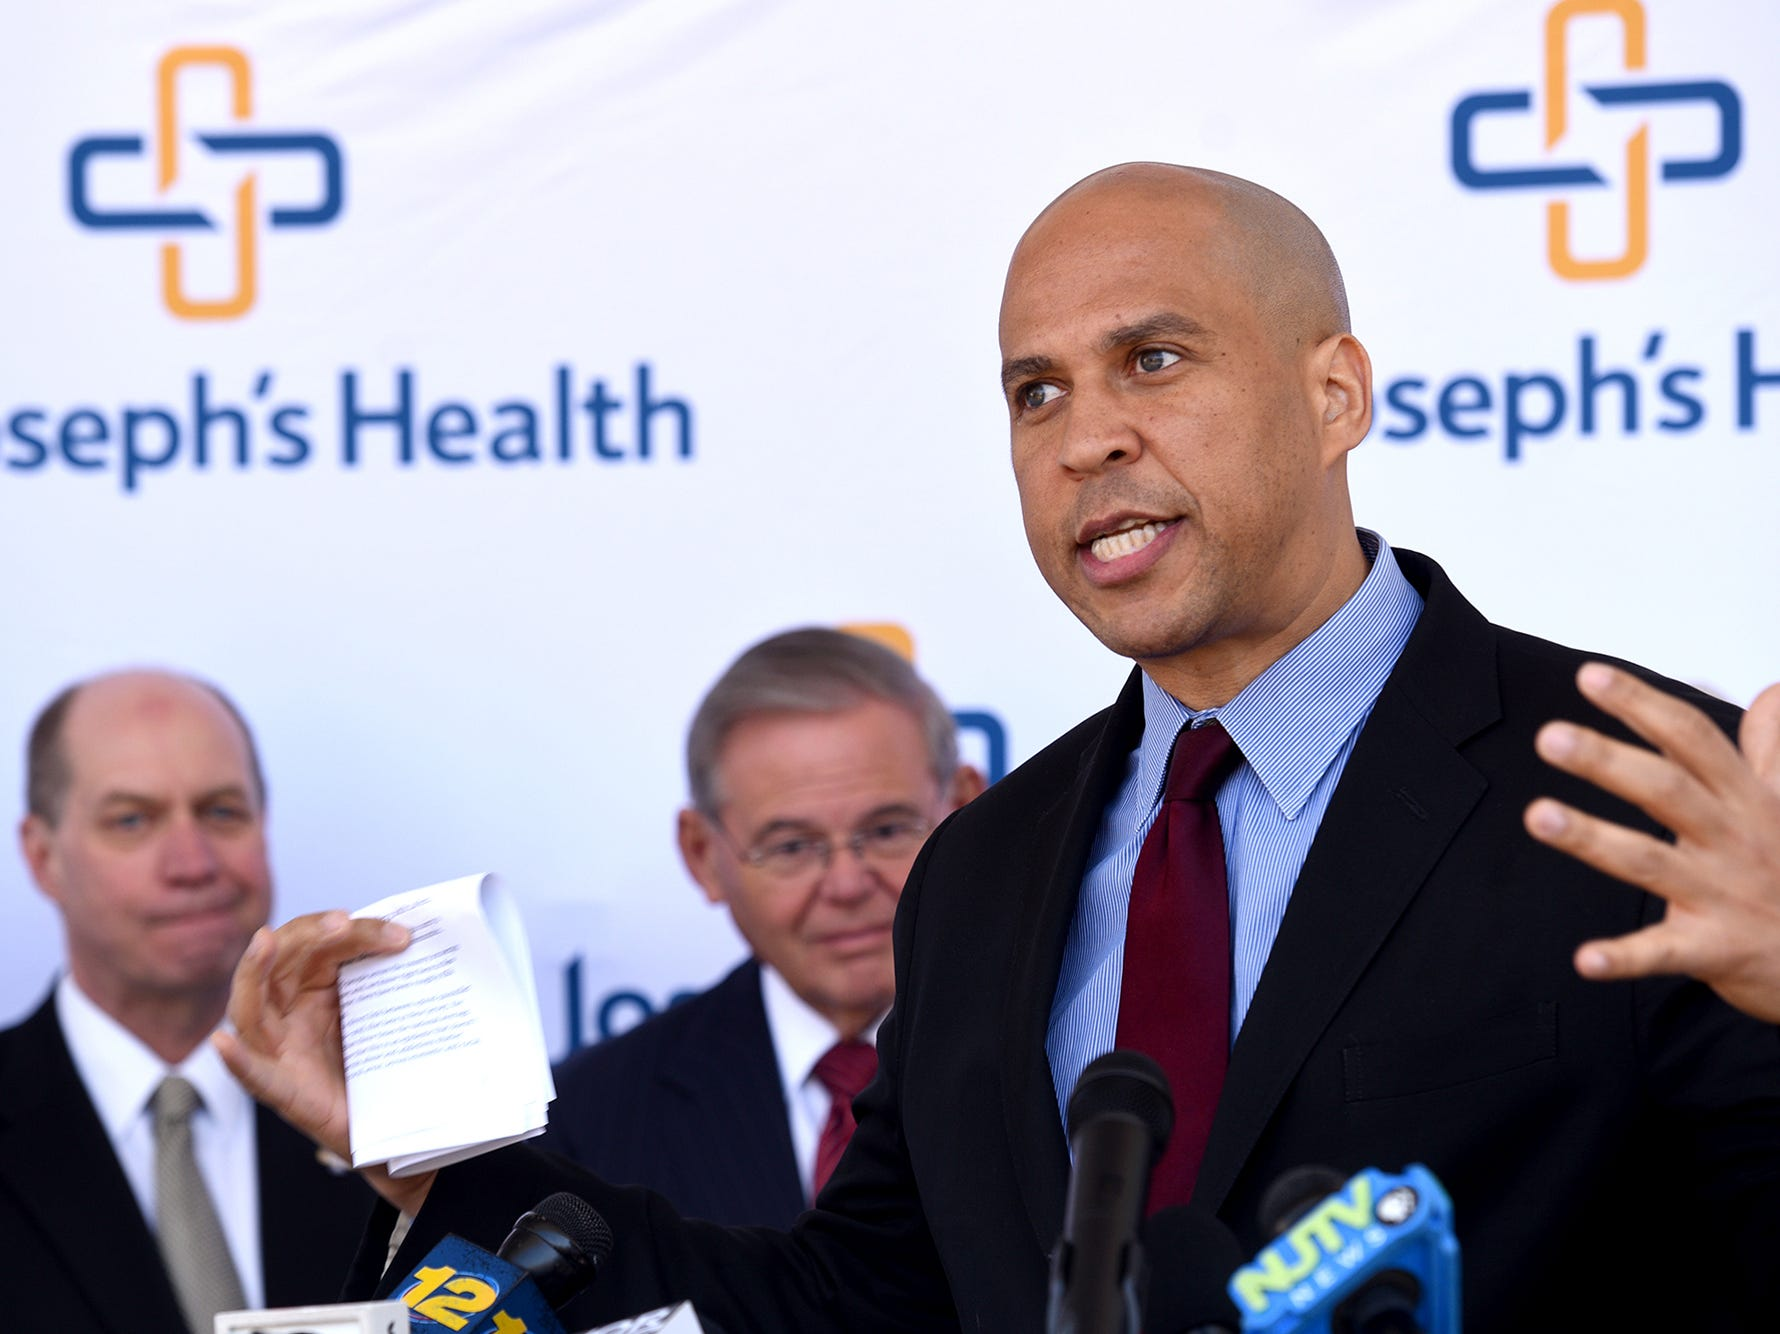 Senator Cory Booker (D-NJ), from right and Senator Bob Menendez (D-NJ) and U.S. Representative Bill Pascrell, Jr. (D-NJ-09), not pictured, announced their bipartisan federal legislation that would provide emergency departments with the resources they need to combat the opioid crisis.The Alternatives to Opioids (ALTO) in the Emergency Department Act would establish a national demonstration program, based on the successful ALTO model pioneered at St. Joseph's Medical Center, to implement alternative pain management protocols to limit the use of unnecessary opioids in emergency departments both here in New Jersey and across the country on Monday, April 23, 2018.